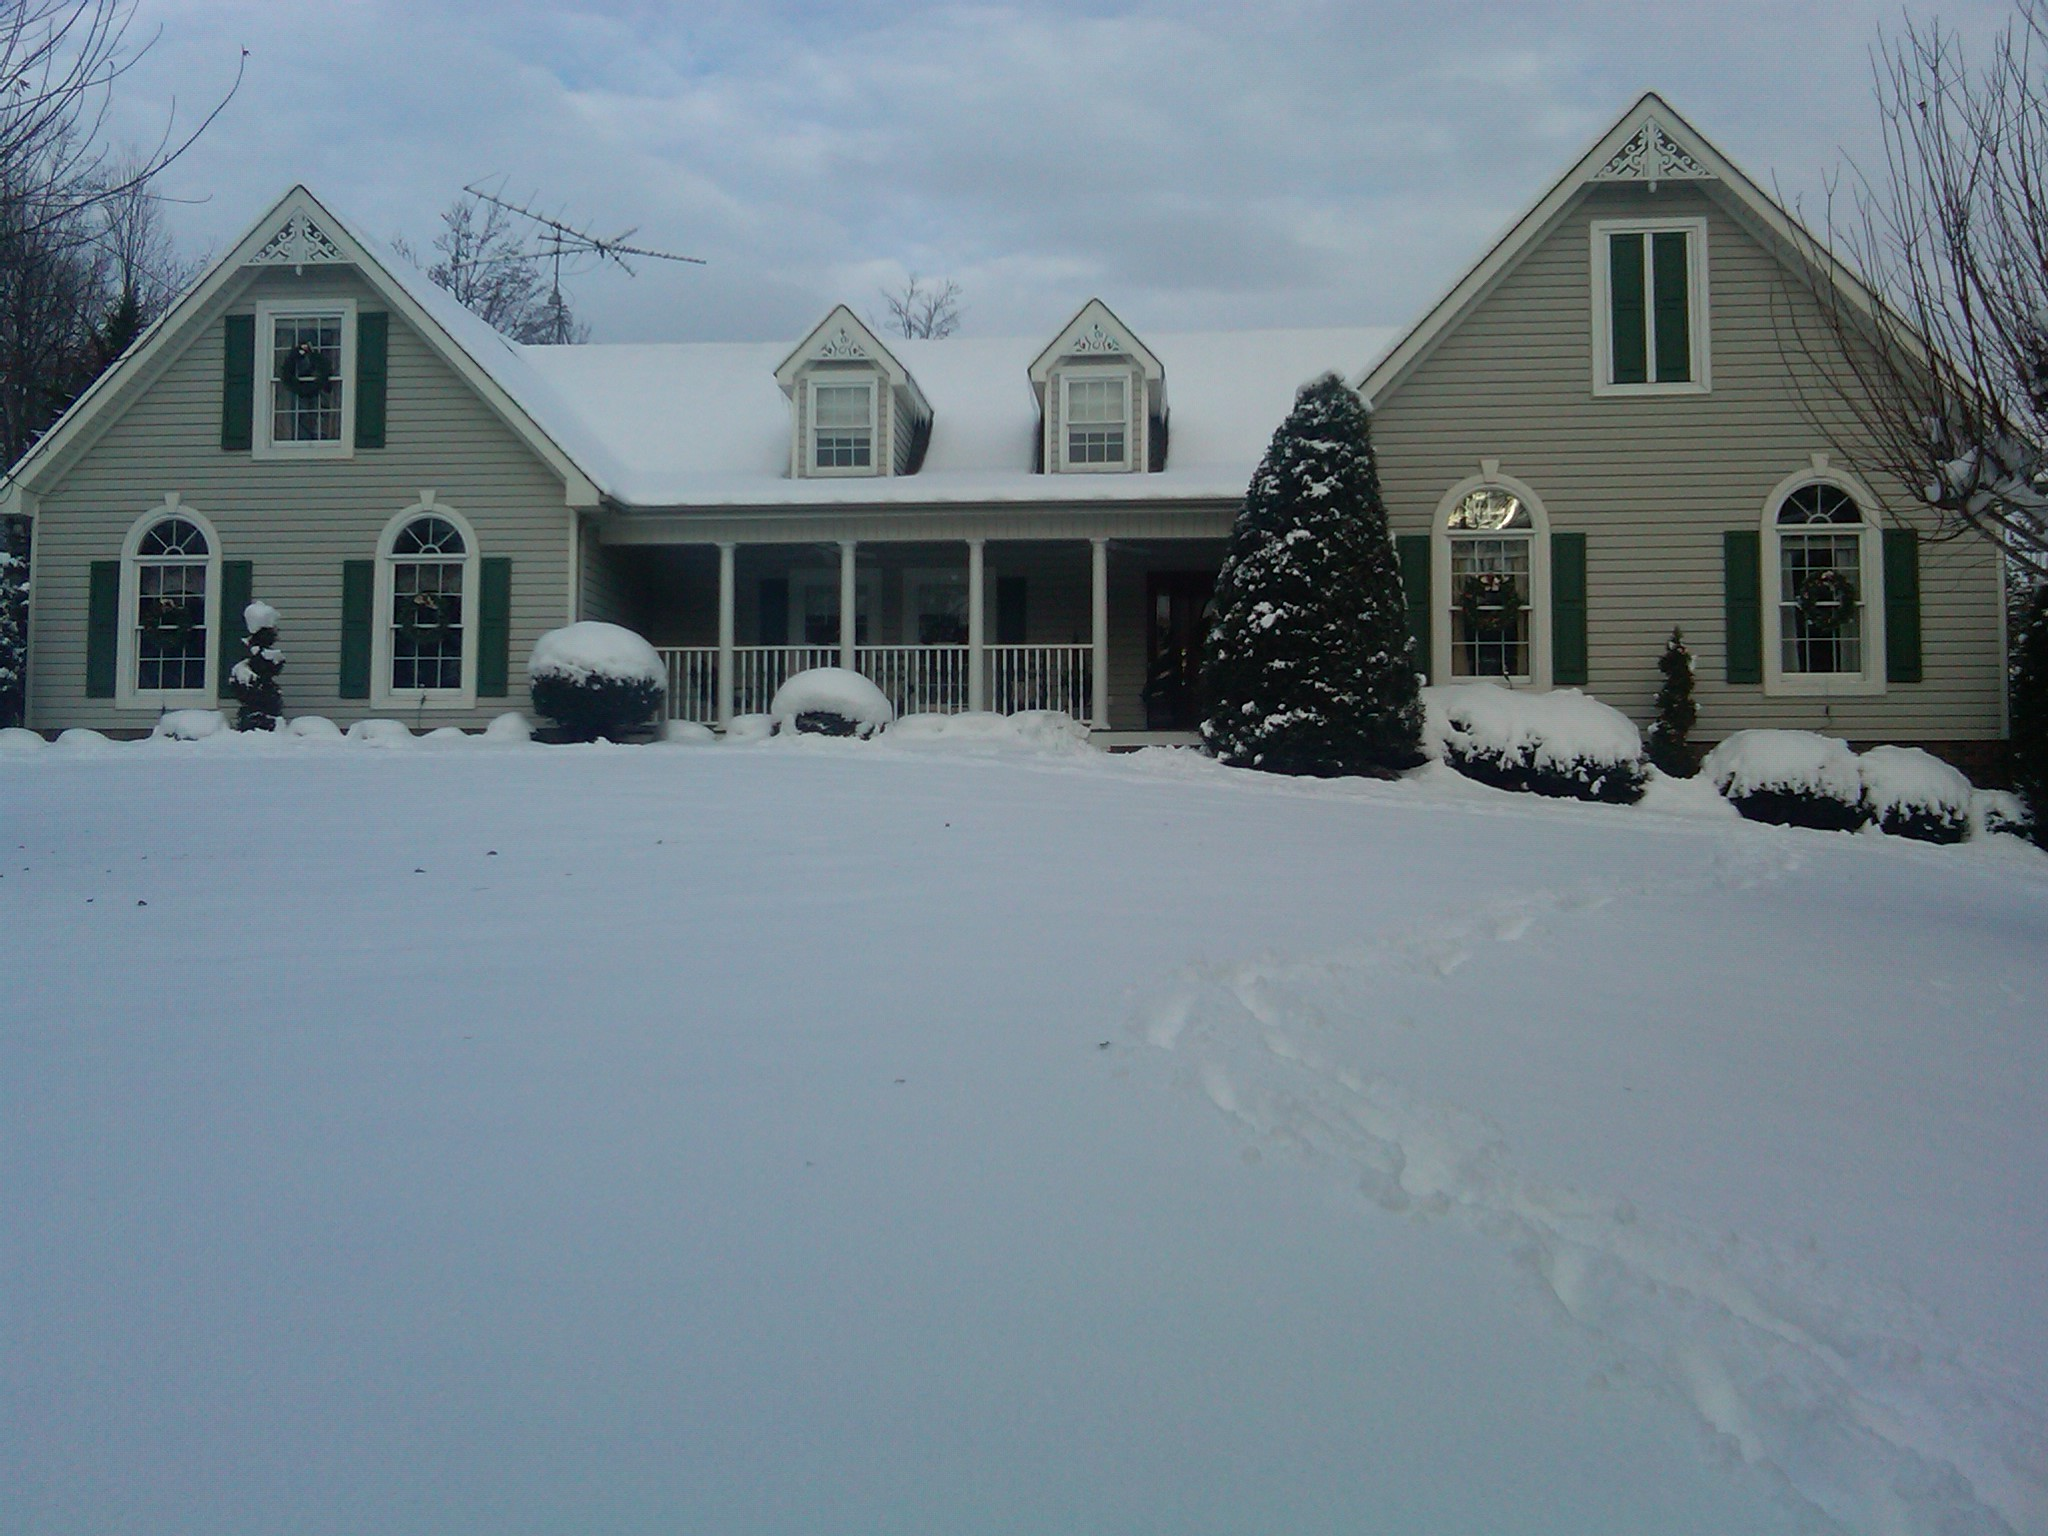 snow covered house - photo #6